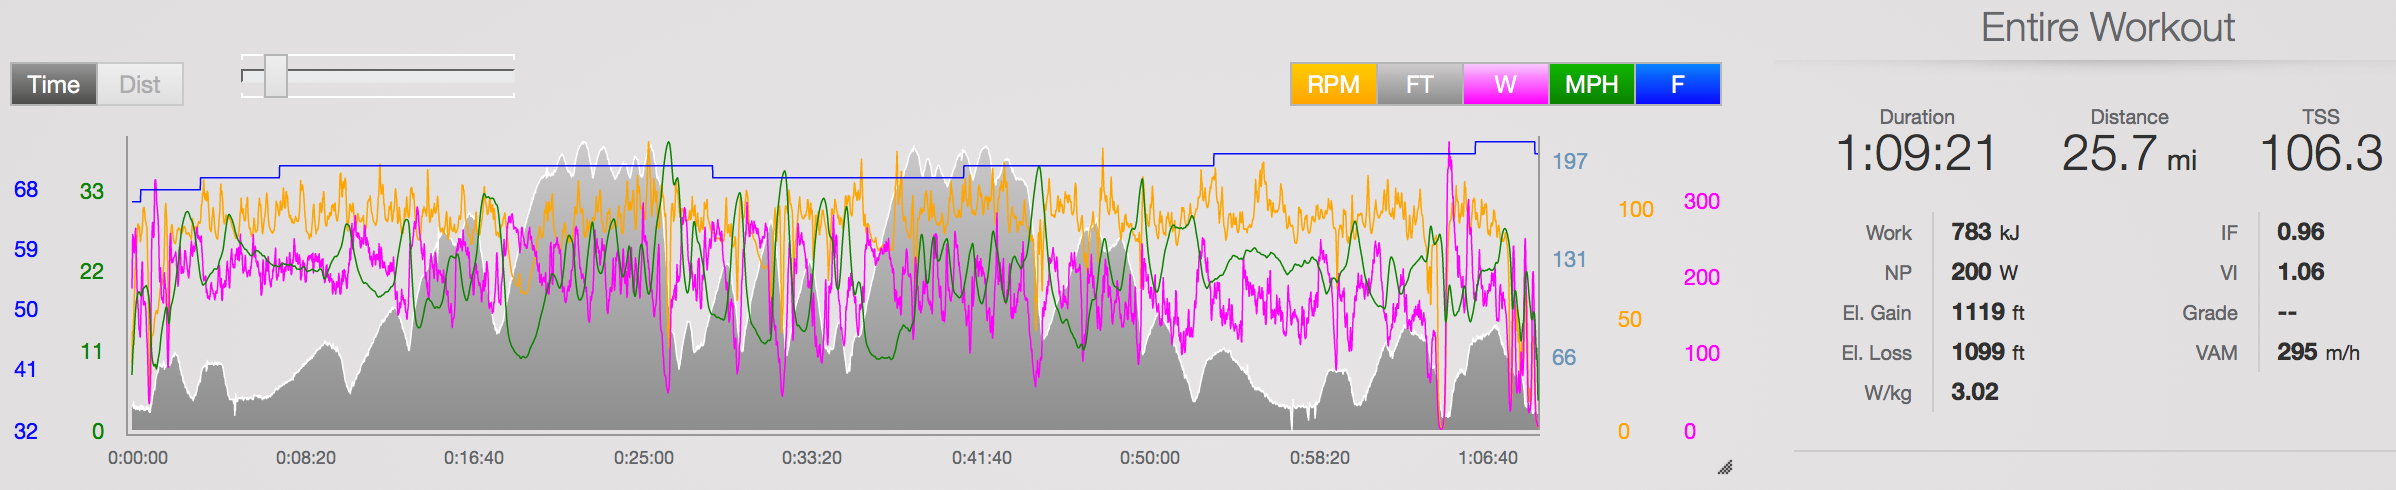 2015 NYC Tri Bike File ( link )   IF is off here. FTP in Training Peaks hadn't been updated in ages. I think my FTP was probably around 240w. W/kg on this should be accurate; I was ~63kg or 138lbs and Average Power was just 188.  As I mentioned above, I had nothing in my legs during this race. I tried to hold 220 and after 10 minutes I could tell that I had zero. My coach Justin and I were 100% focused on getting me fast for Ironman Mont Tremblant, not the NYC tri.  The week prior I had logged a 20 hours of training during a Boulder training camp, including a 112 mile ride at Ironman effort on Friday ( TP Link ) & a 20 mile run @ 6:59/mile pace on Saturday ( TP Link ). The Wednesday before the race I had also done a 60 mile ride @ just above Ironman watts ( TP link ) + a 17 mile off-the-bike run @ 7:15/mile pace ( TP Link ). To this day, that session was one of the hardest Ironman training days I've done. So, big surprise, I raced like shit :)